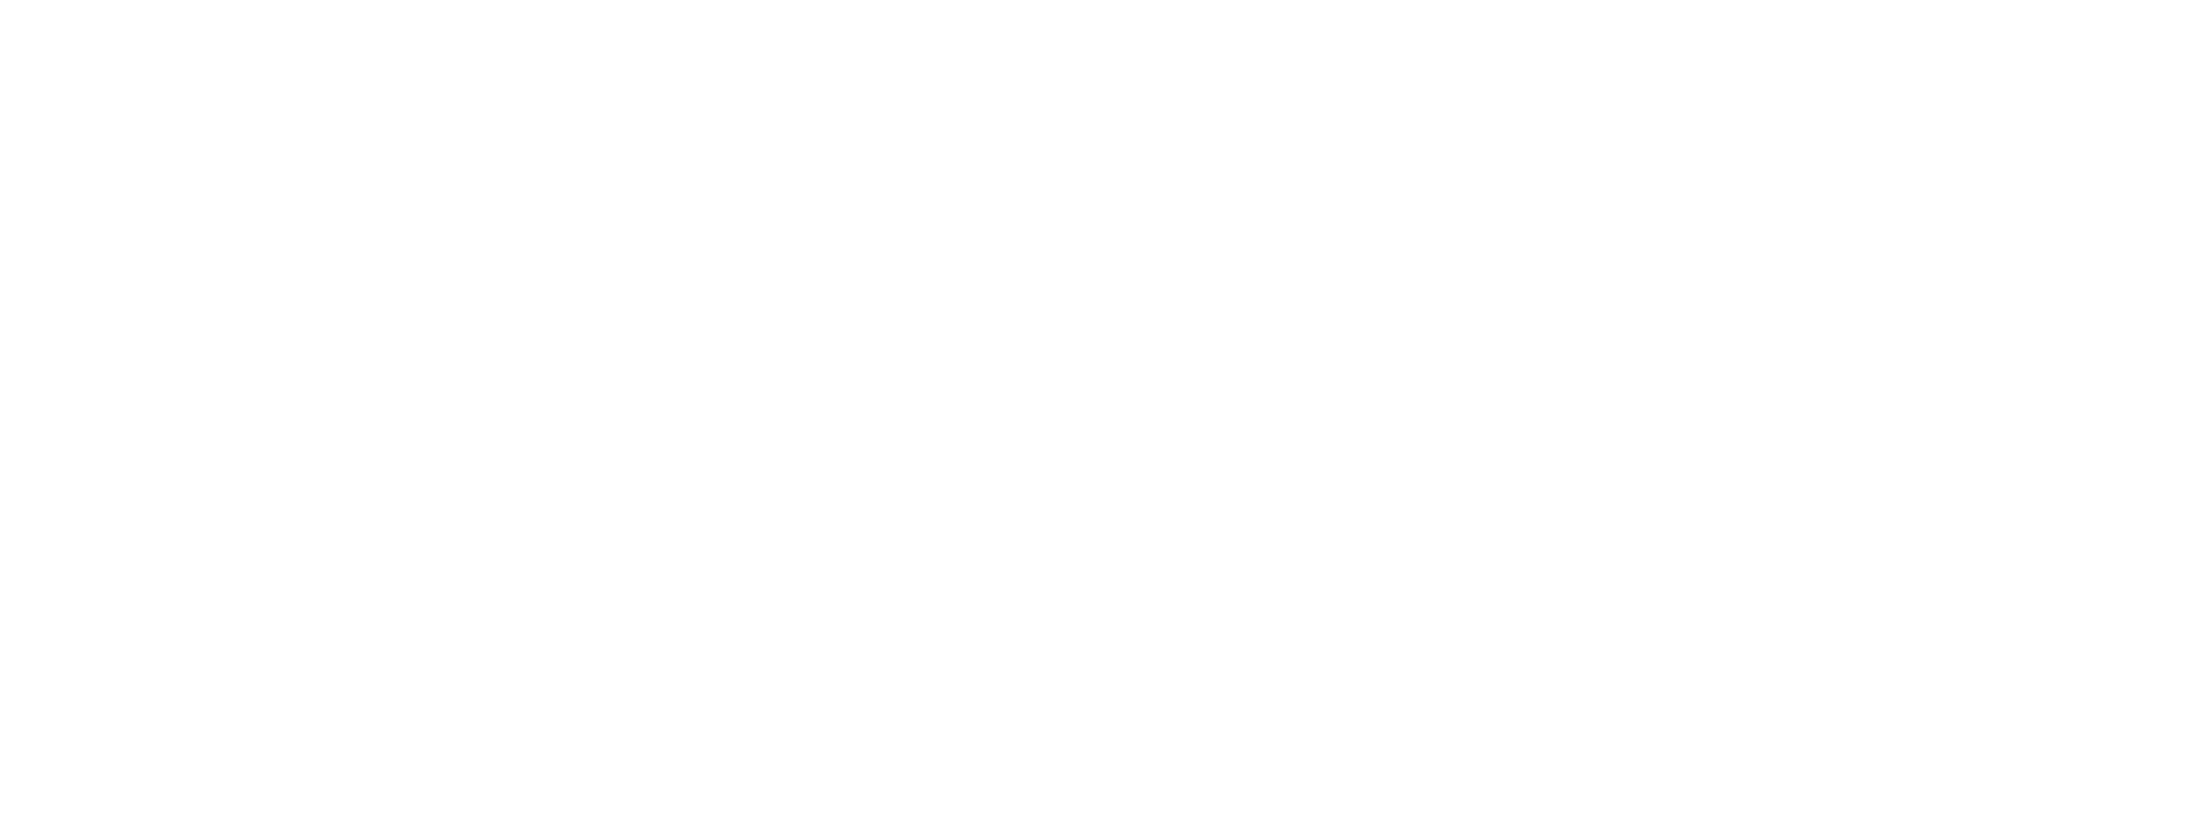 Custom Upholstered Furniture